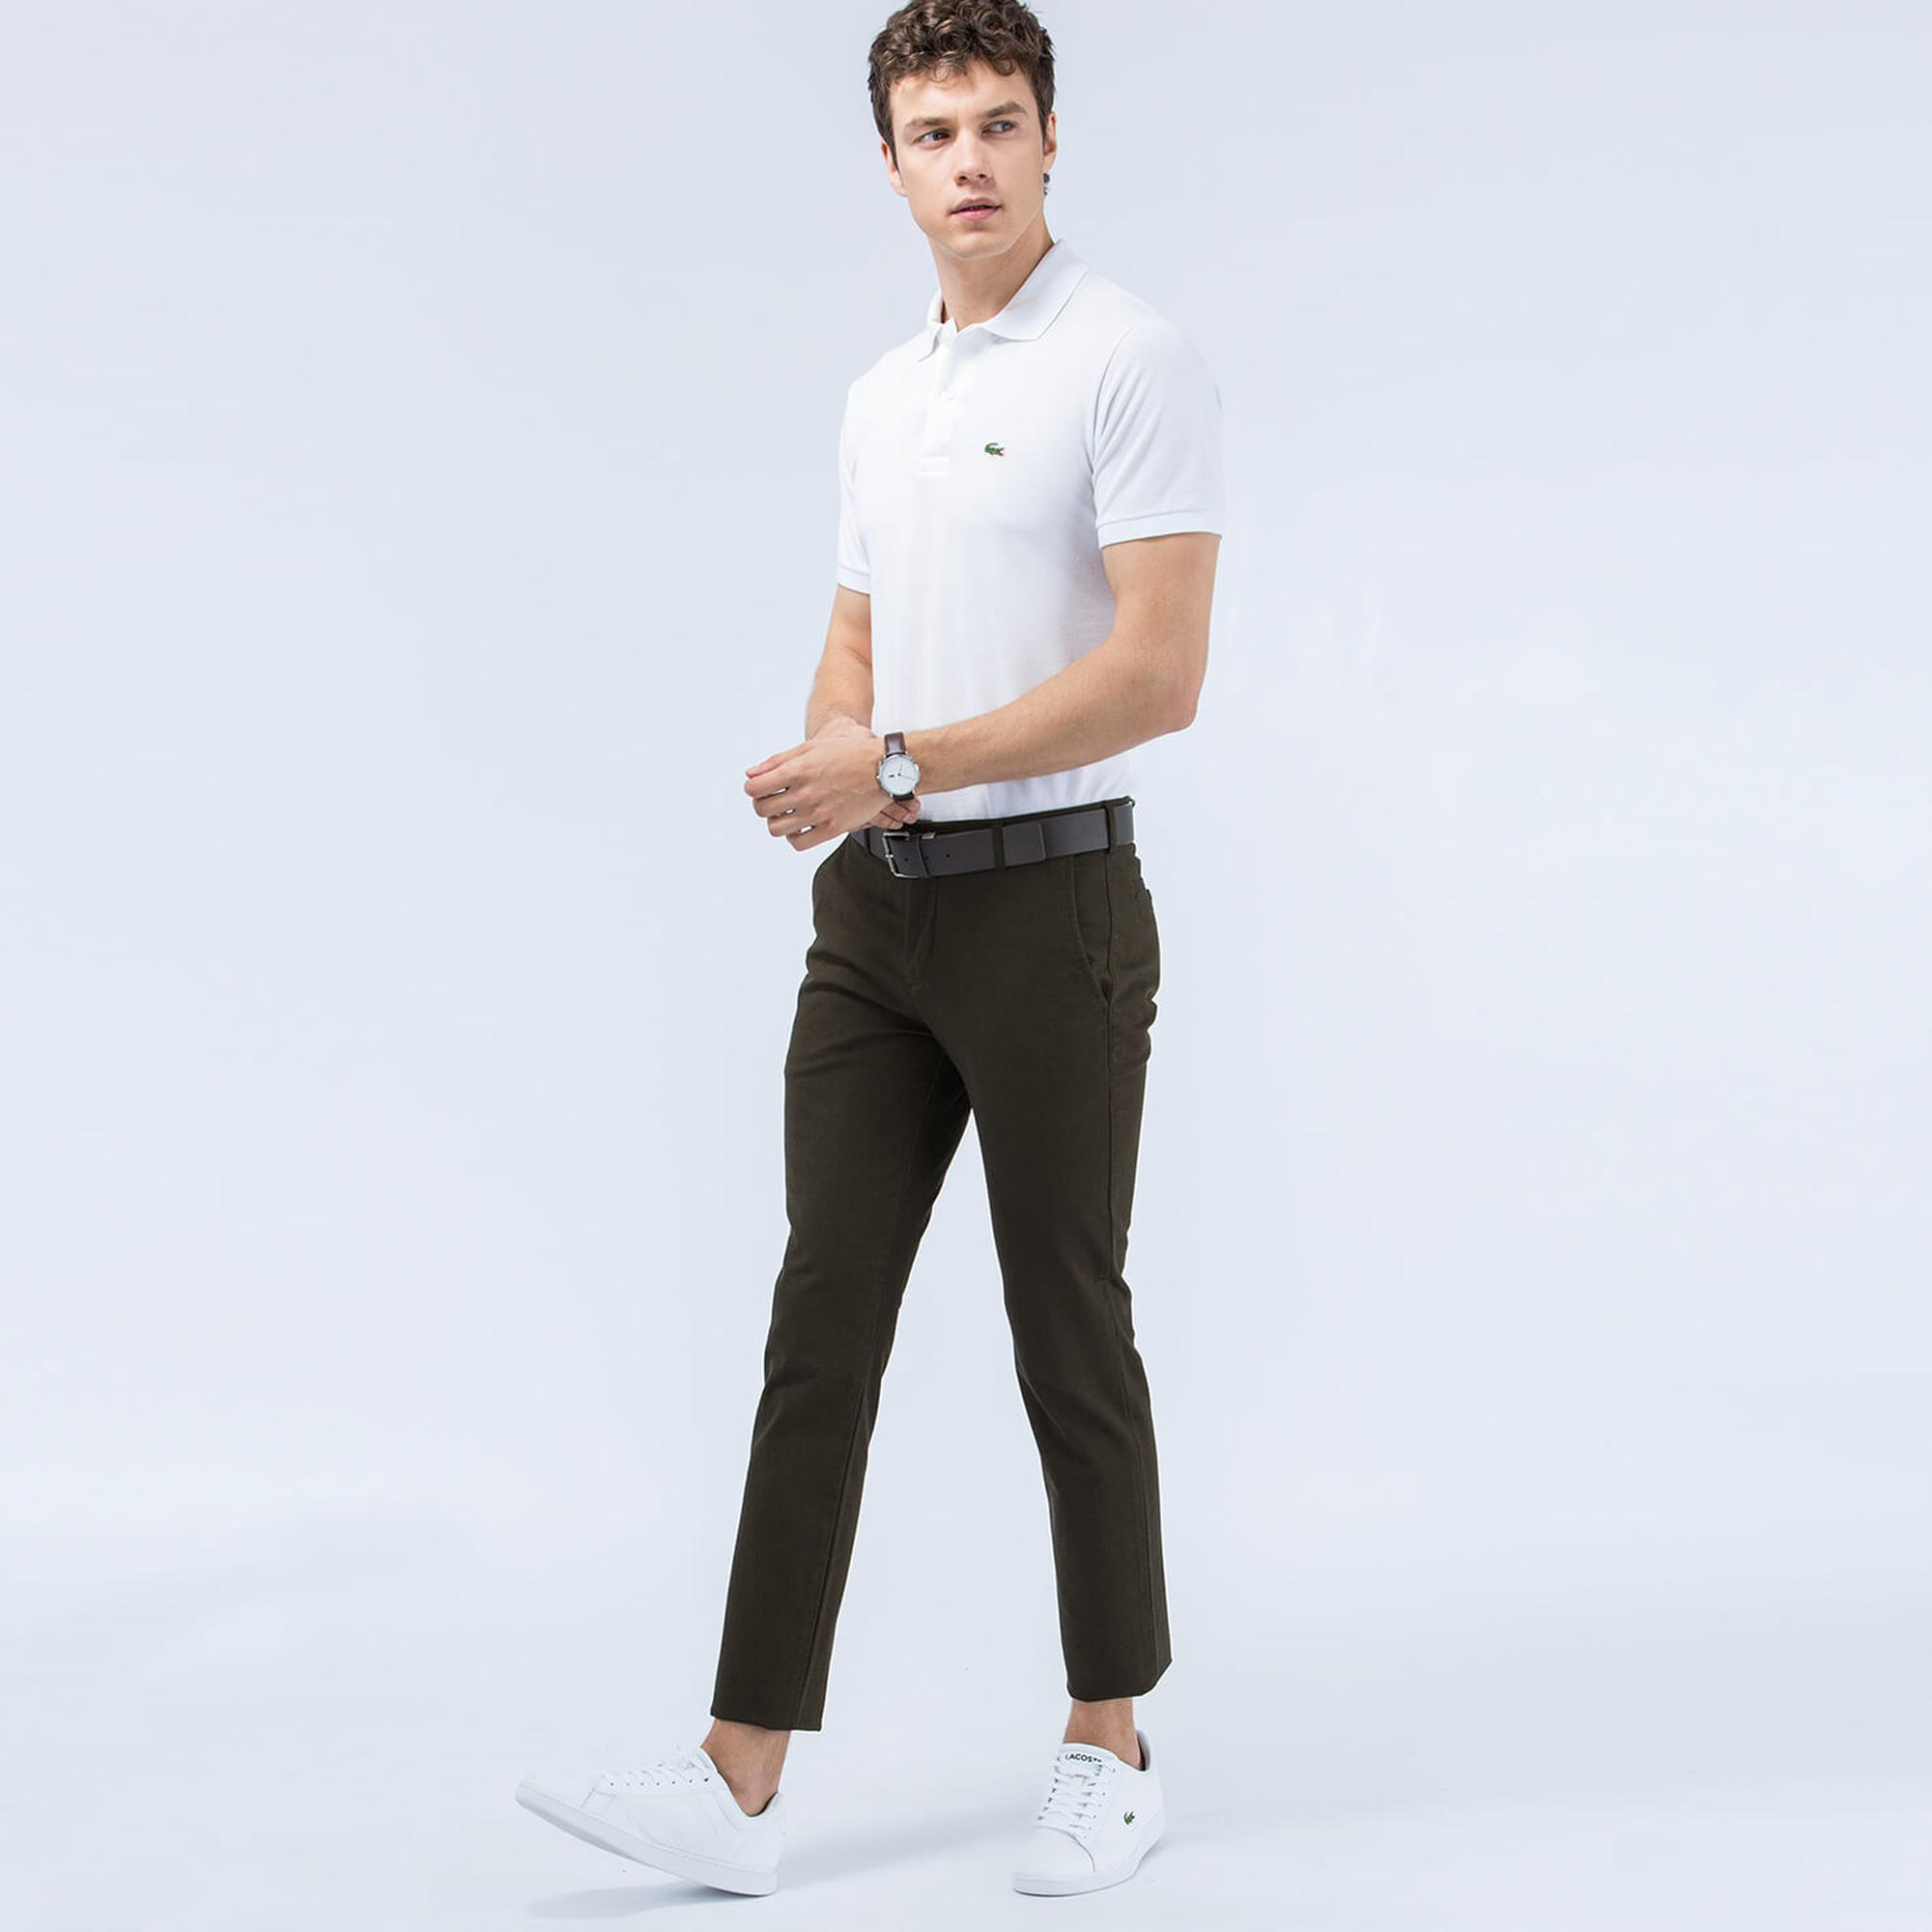 Lacoste Dotted Green Men's Trousers